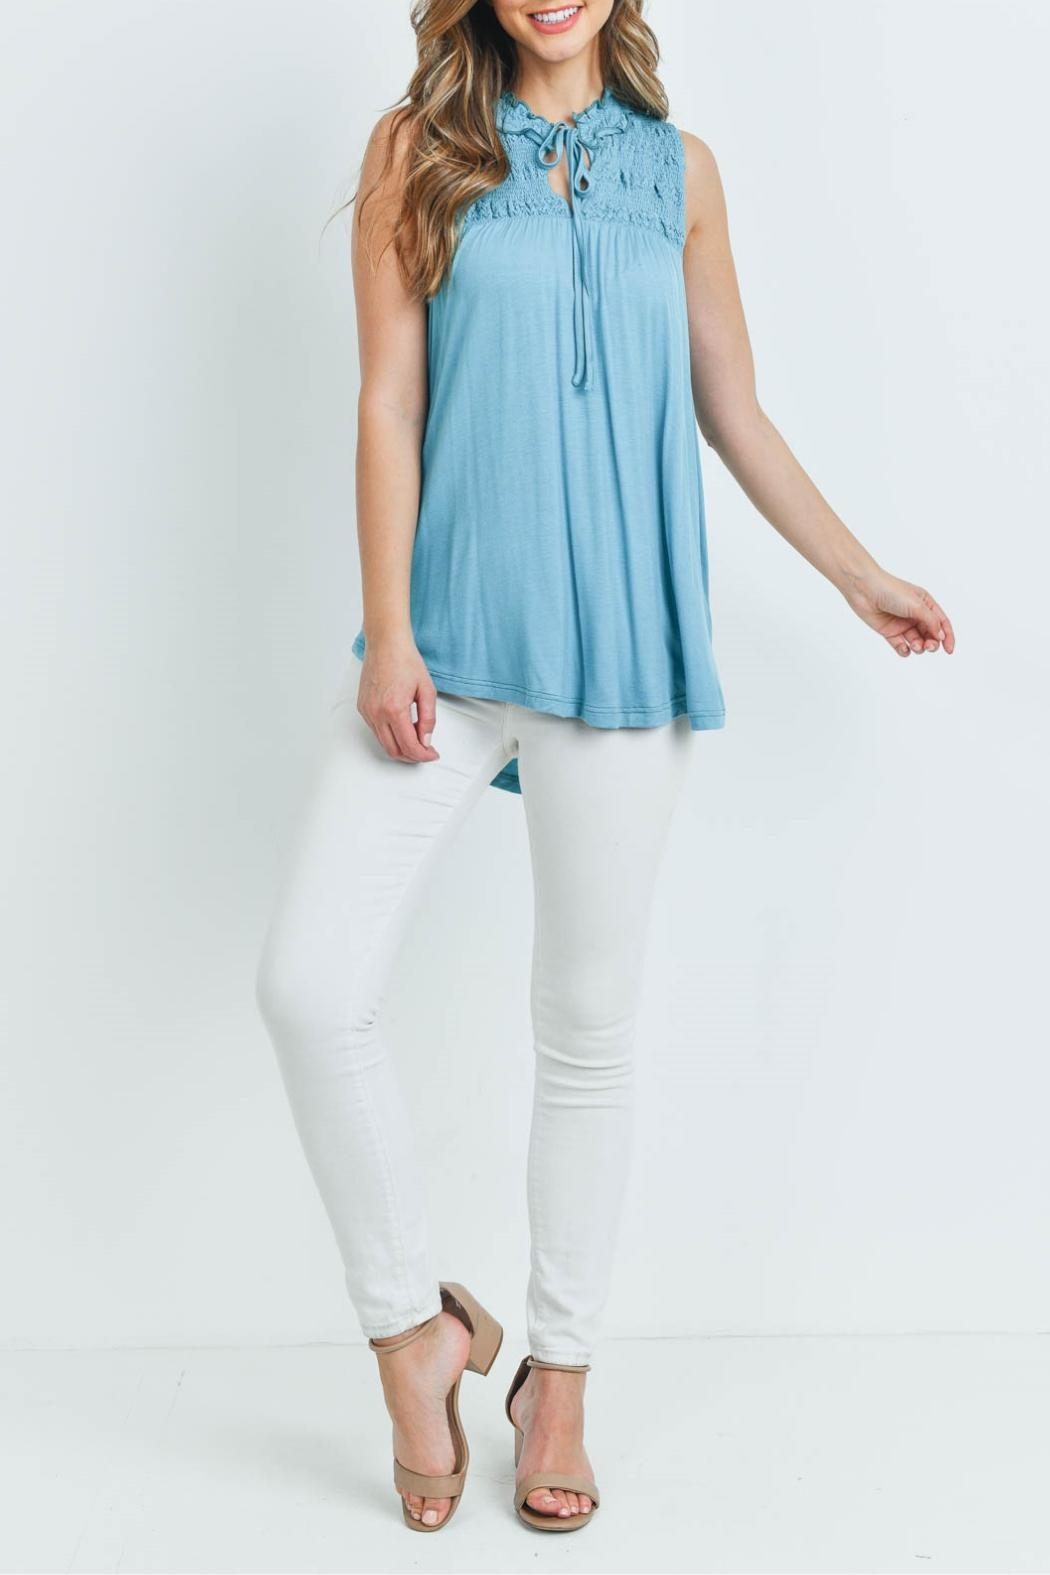 L Love Turquoise Top - Side Cropped Image